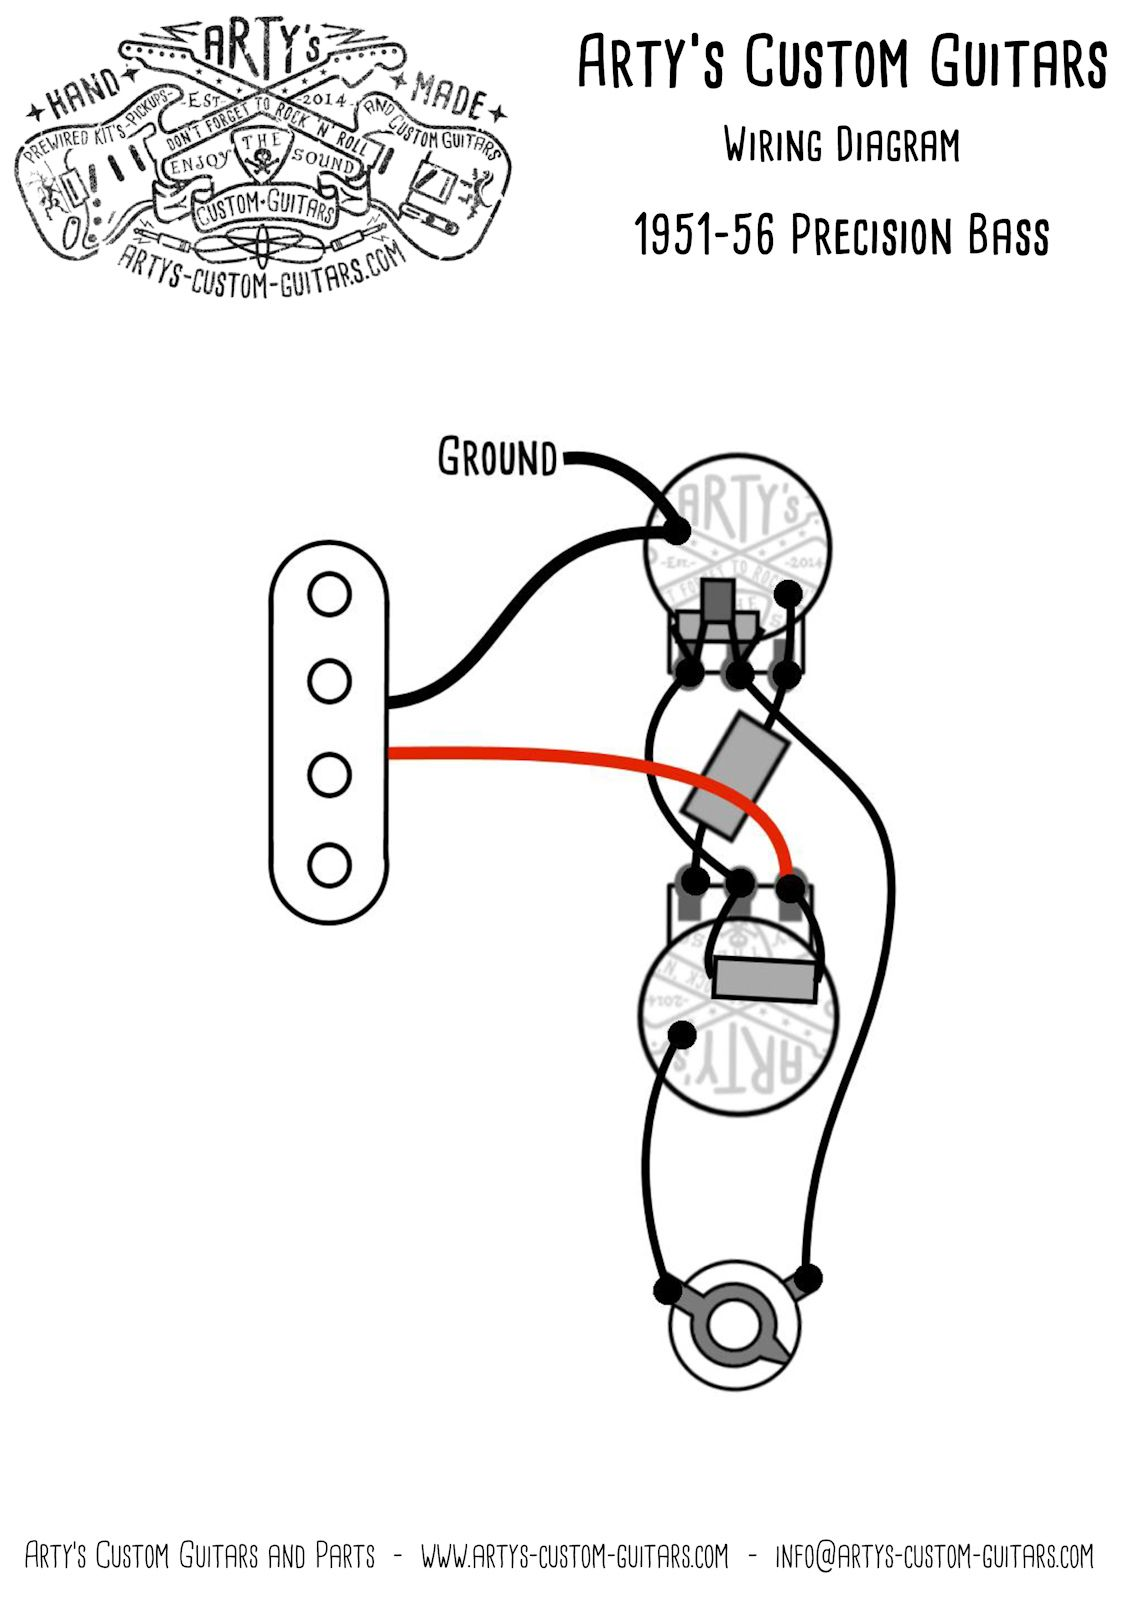 Fender Bass Wiring Diagram from i.pinimg.com